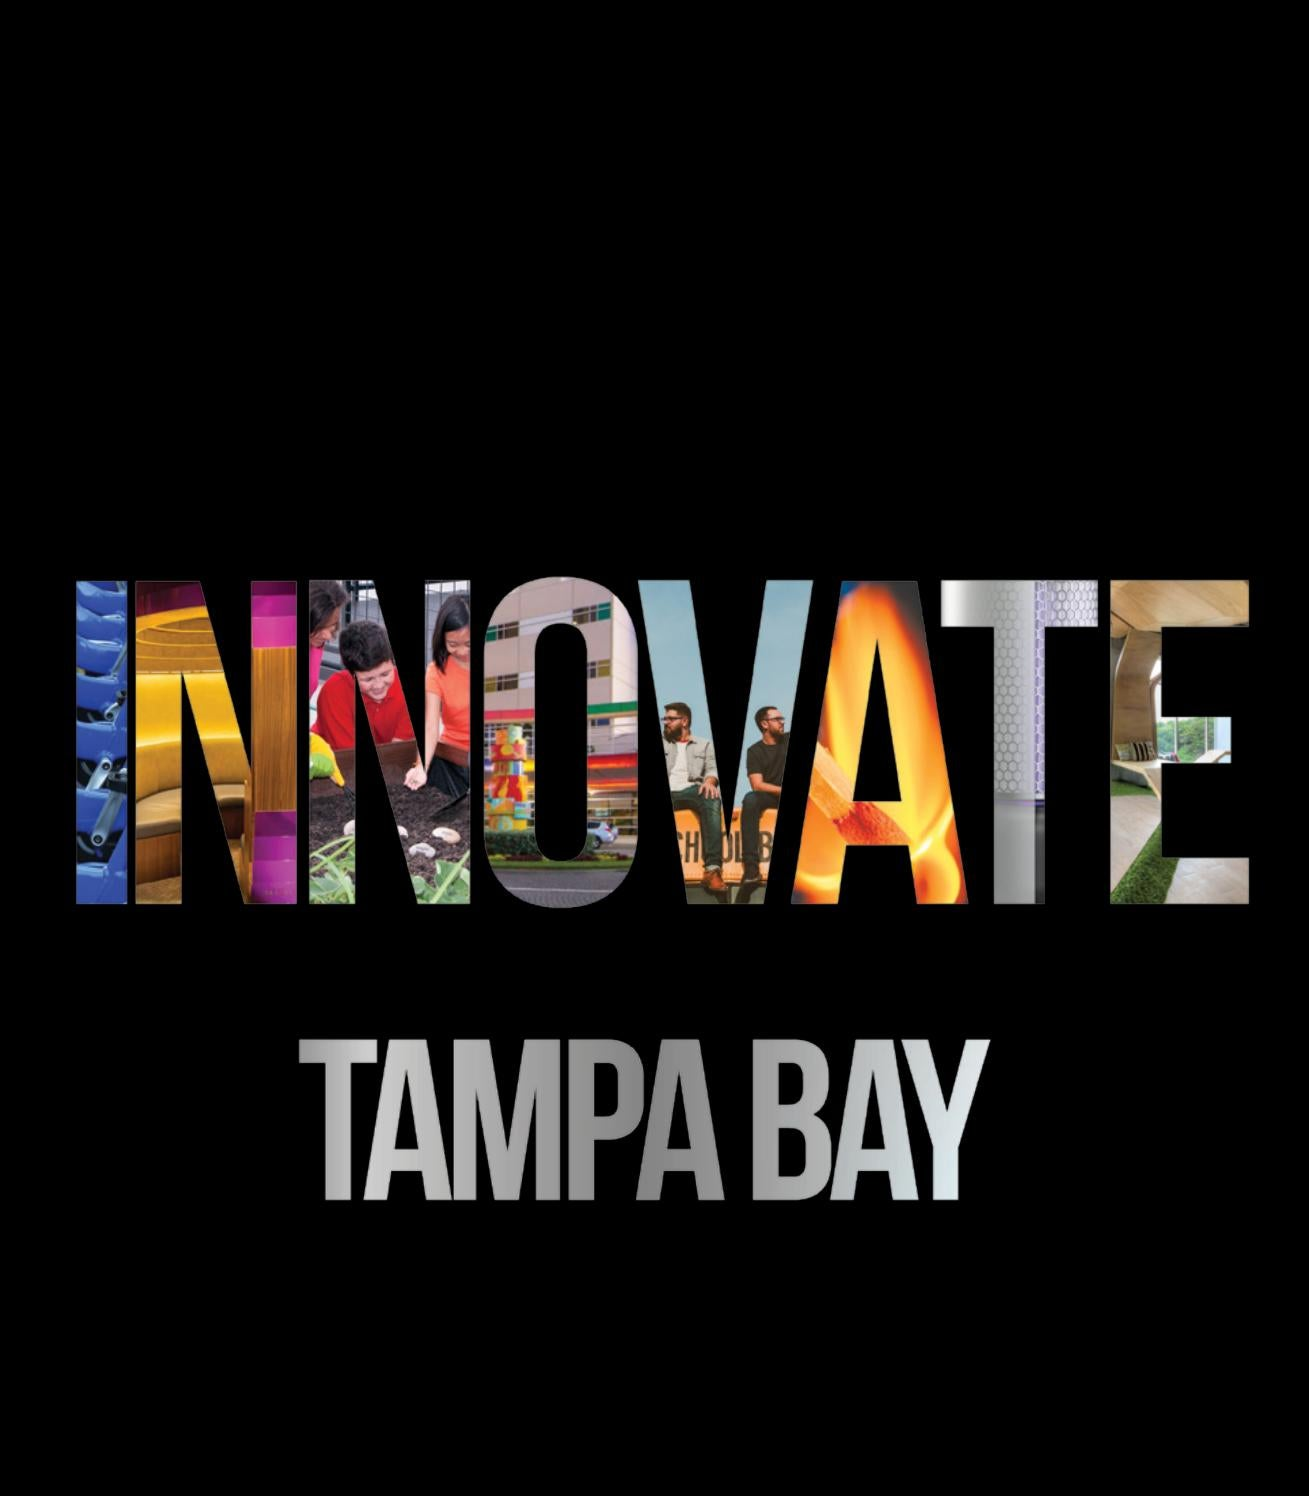 Innovate tampa bay 1 final by sven boermeester issuu fandeluxe Images